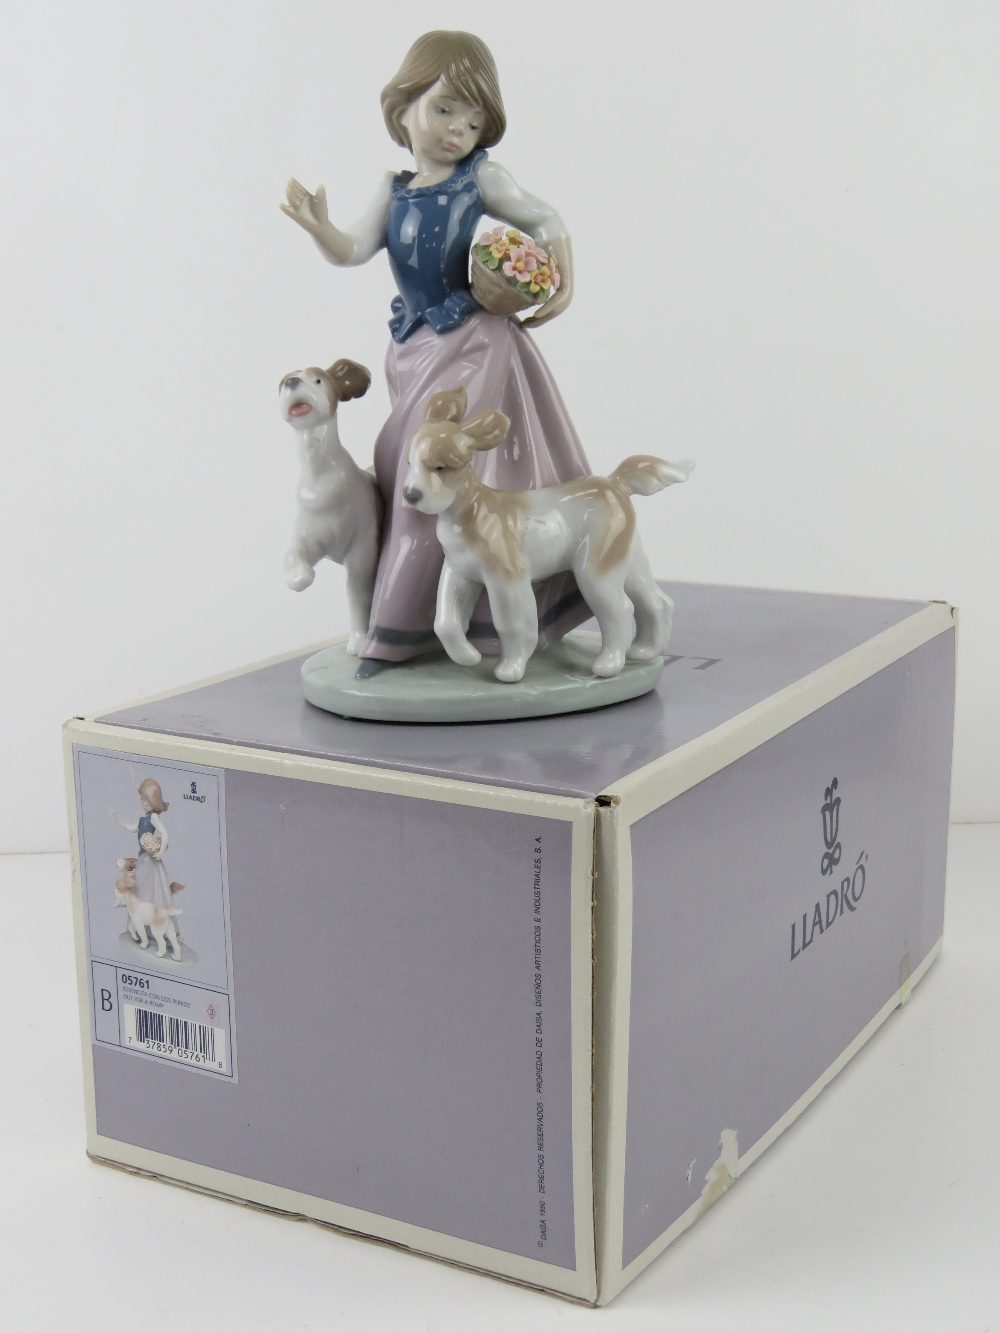 Lladro figurine 5761 'Out For A Romp' a girl with two dogs and a basket of flowers under her arm, - Image 5 of 5